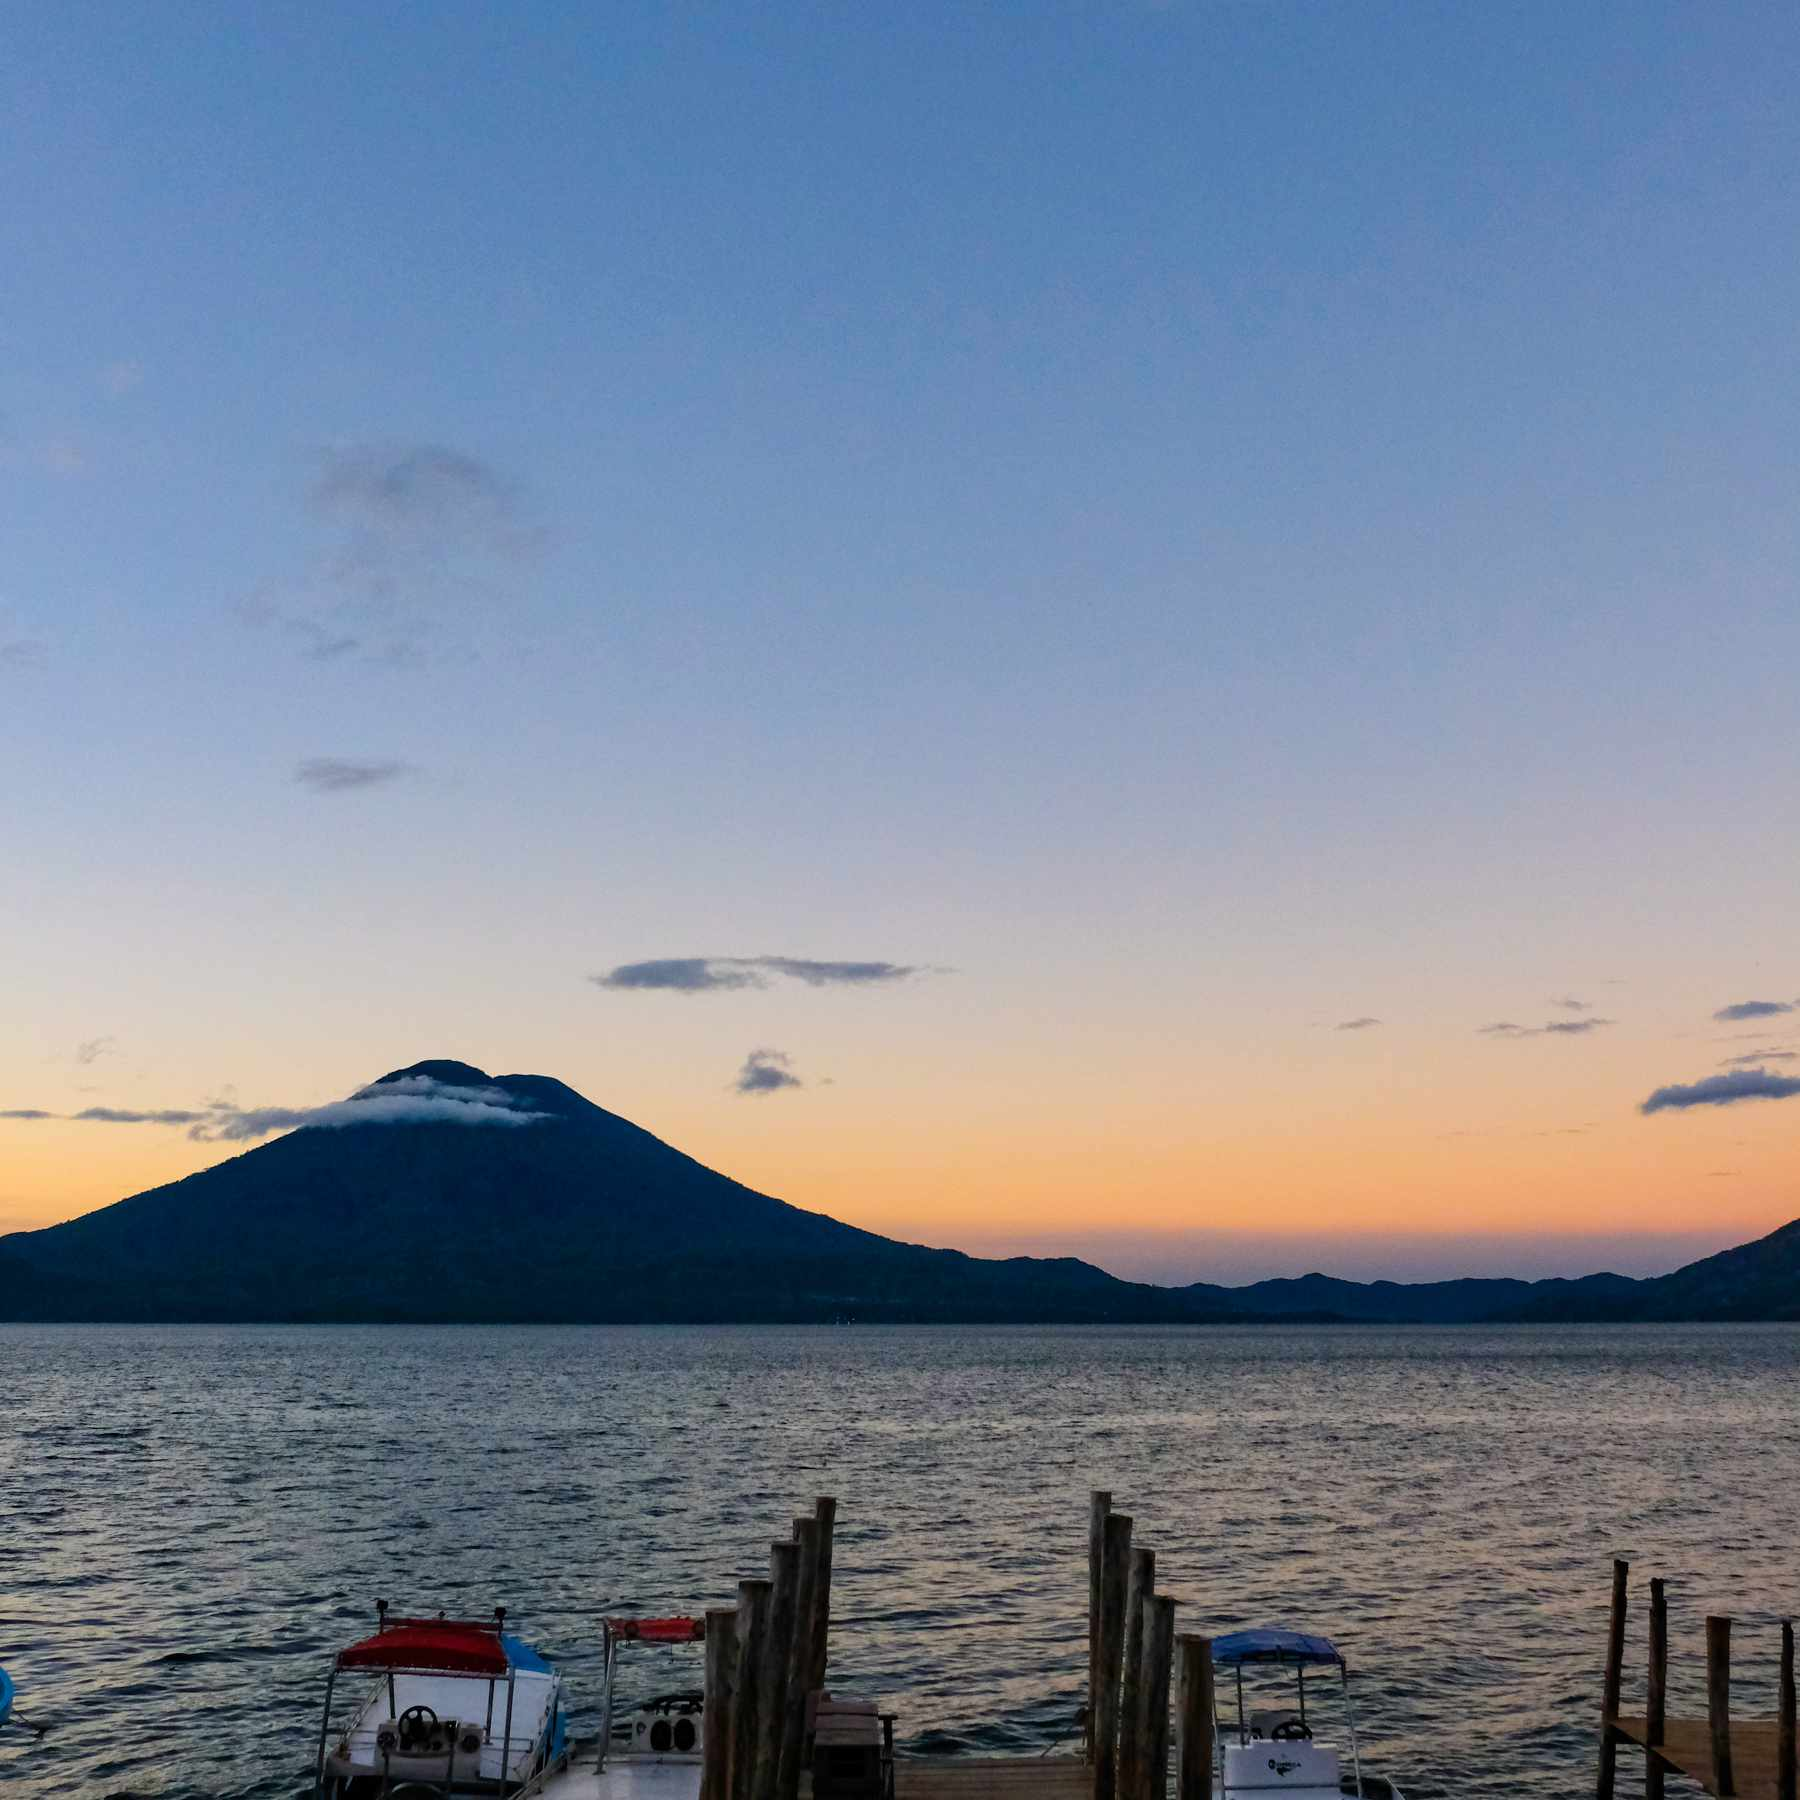 Boats docked on Lake Atitlan with a view of Atitlan volcano